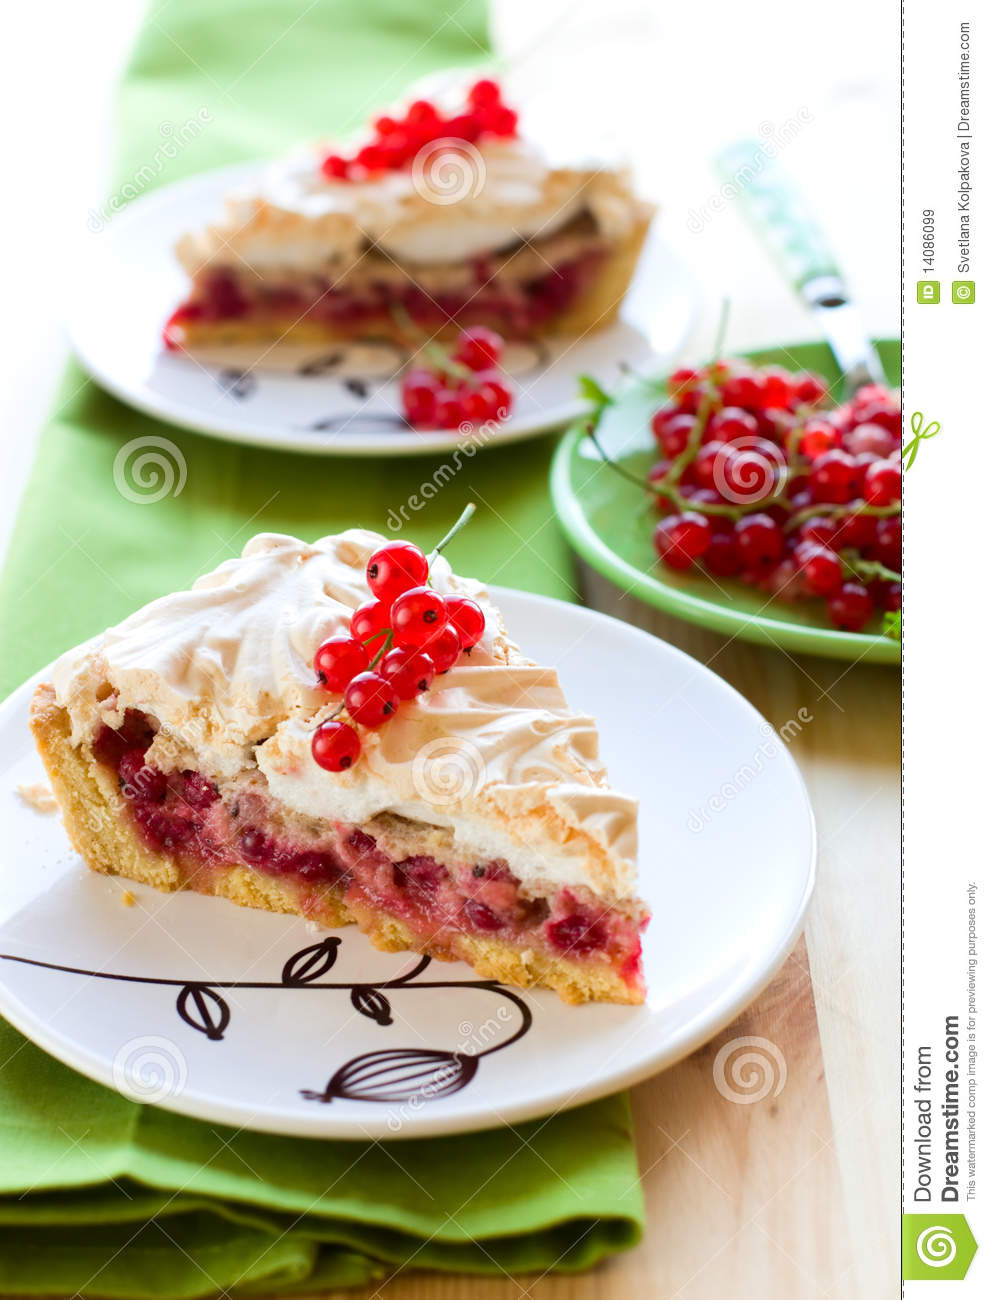 Currant Meringue Tart Royalty Free Stock Images - Image: 14086099